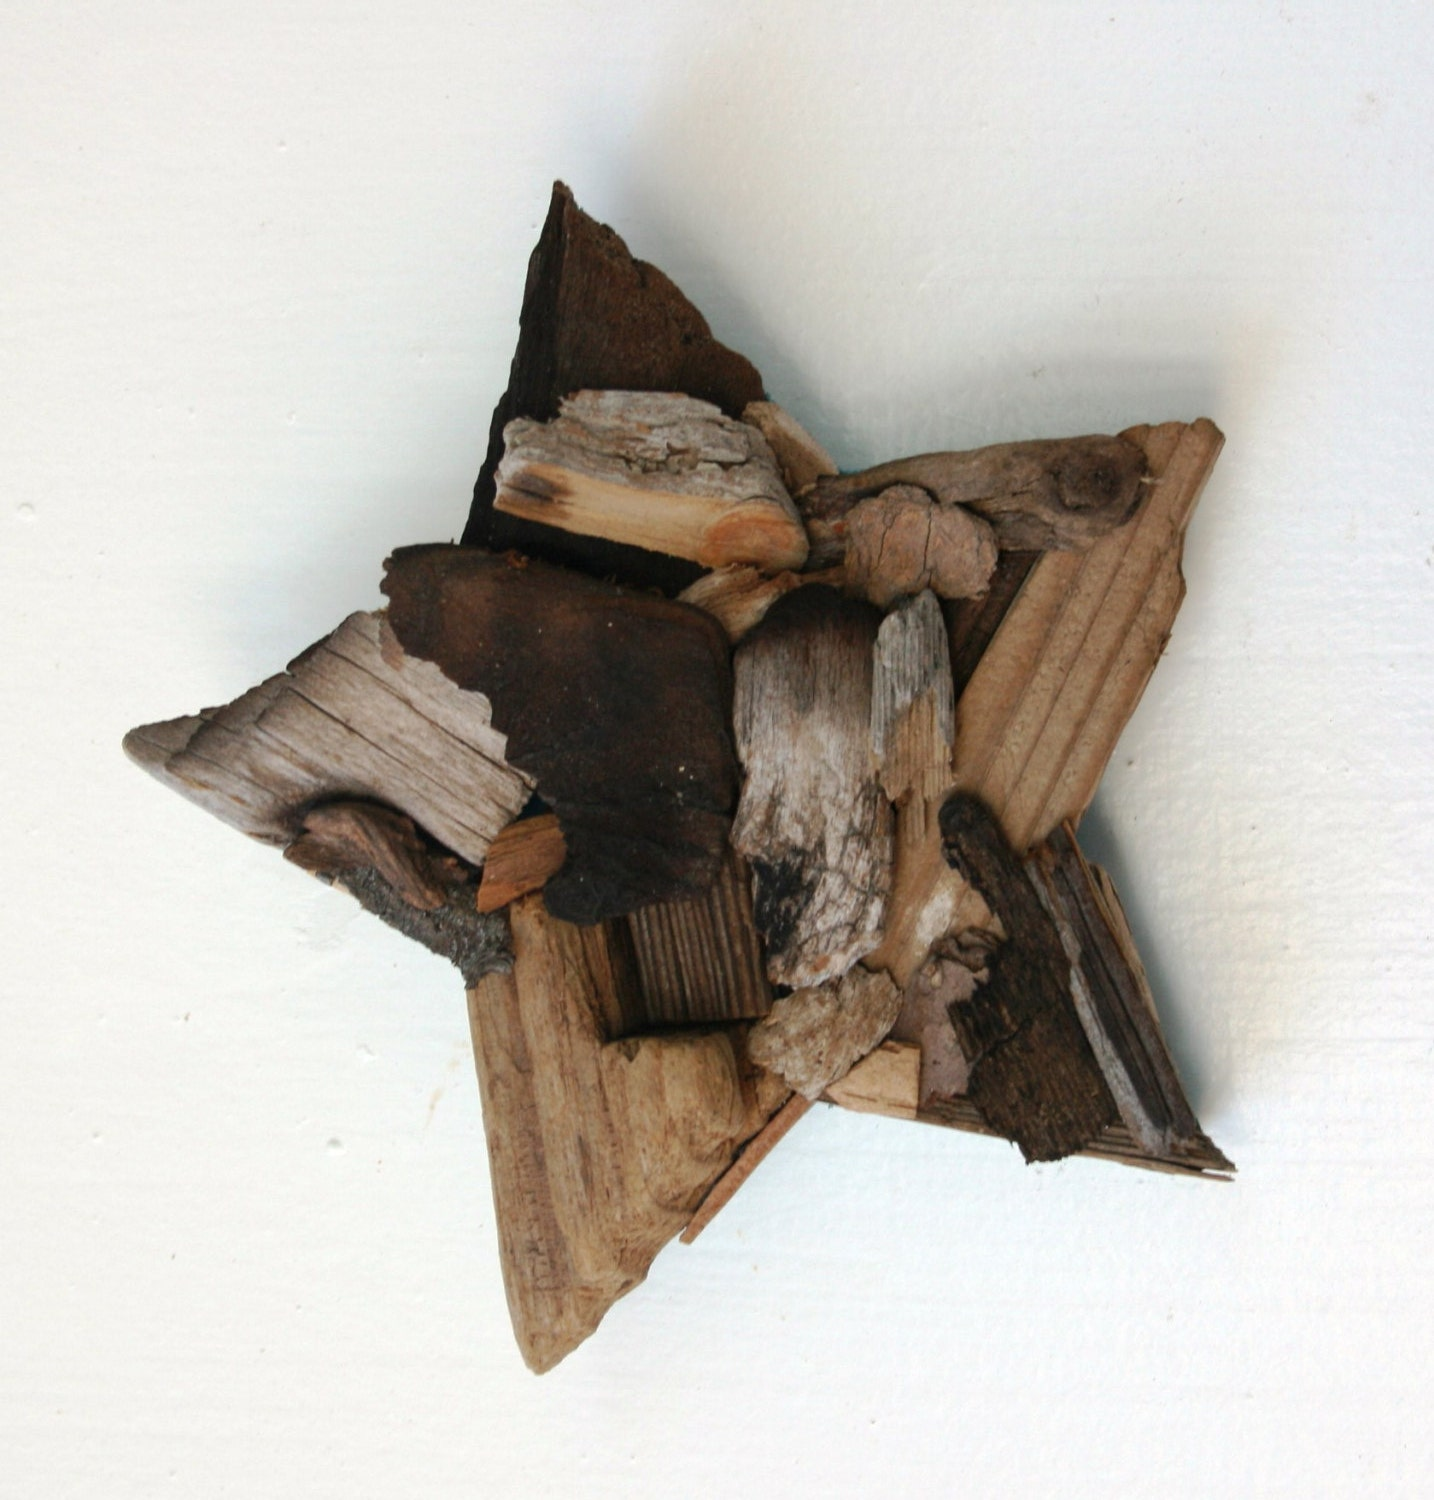 Blue Star Wall Decor : Star driftwood wall decor coastal chic home rustic